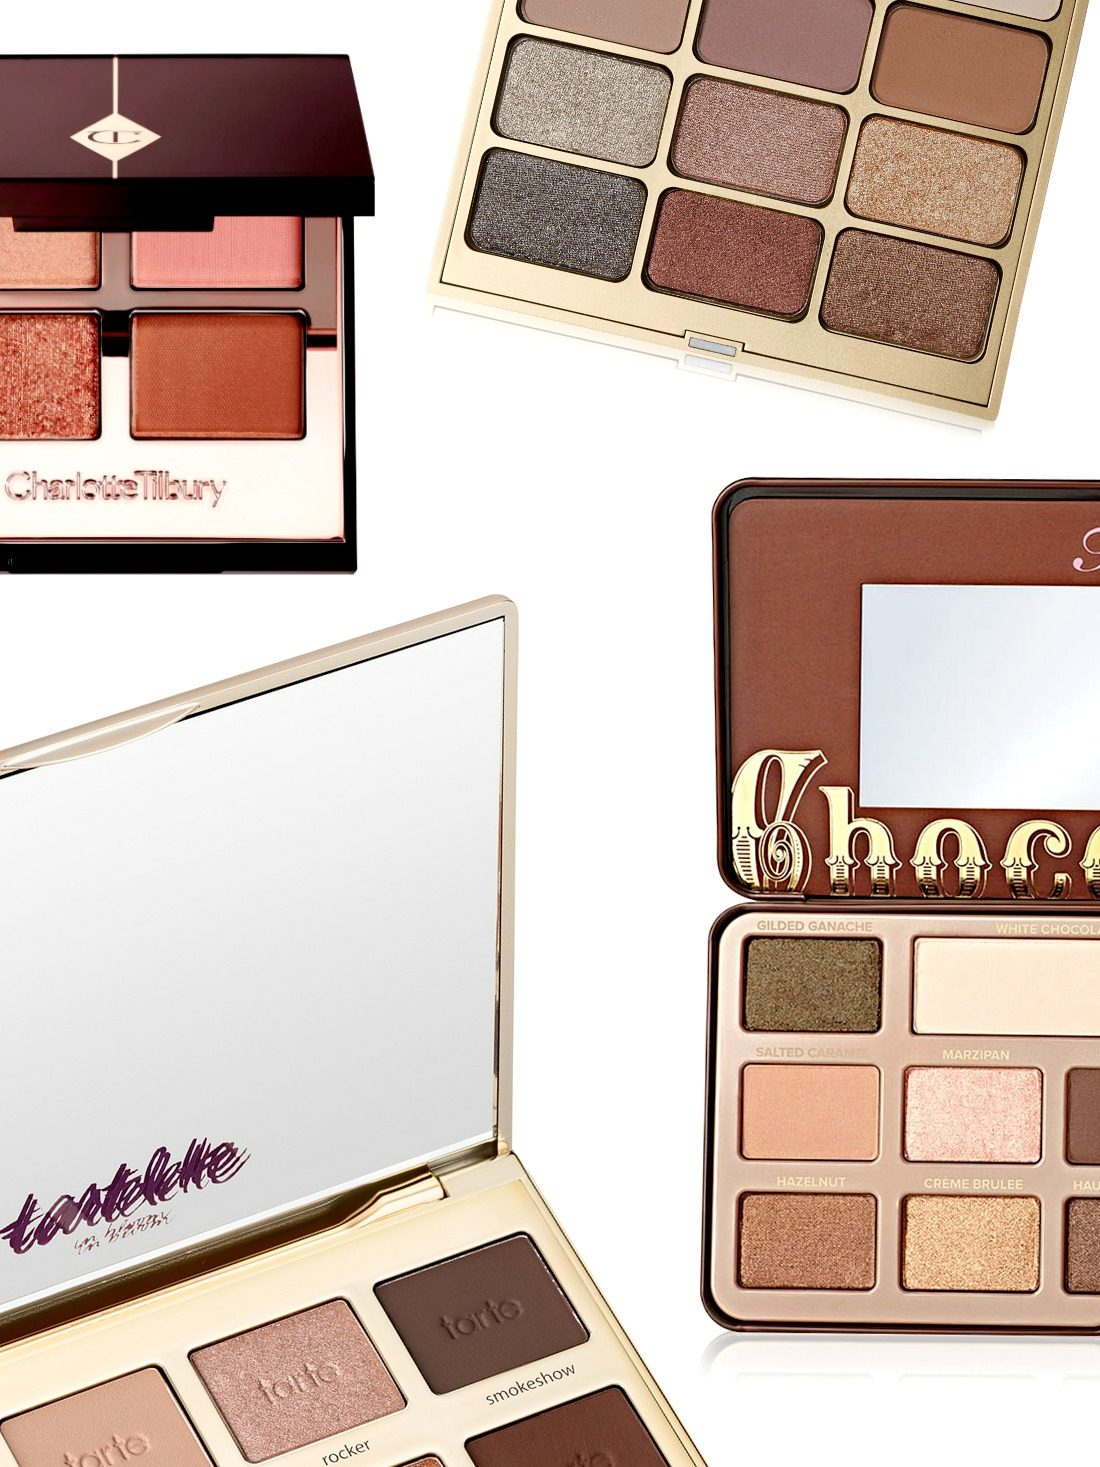 If you're on the hunt for the best neutral eyeshadow palettes we have search through high-end and drugstore options for the best, from cool toned to warm and rosy! Check them out!